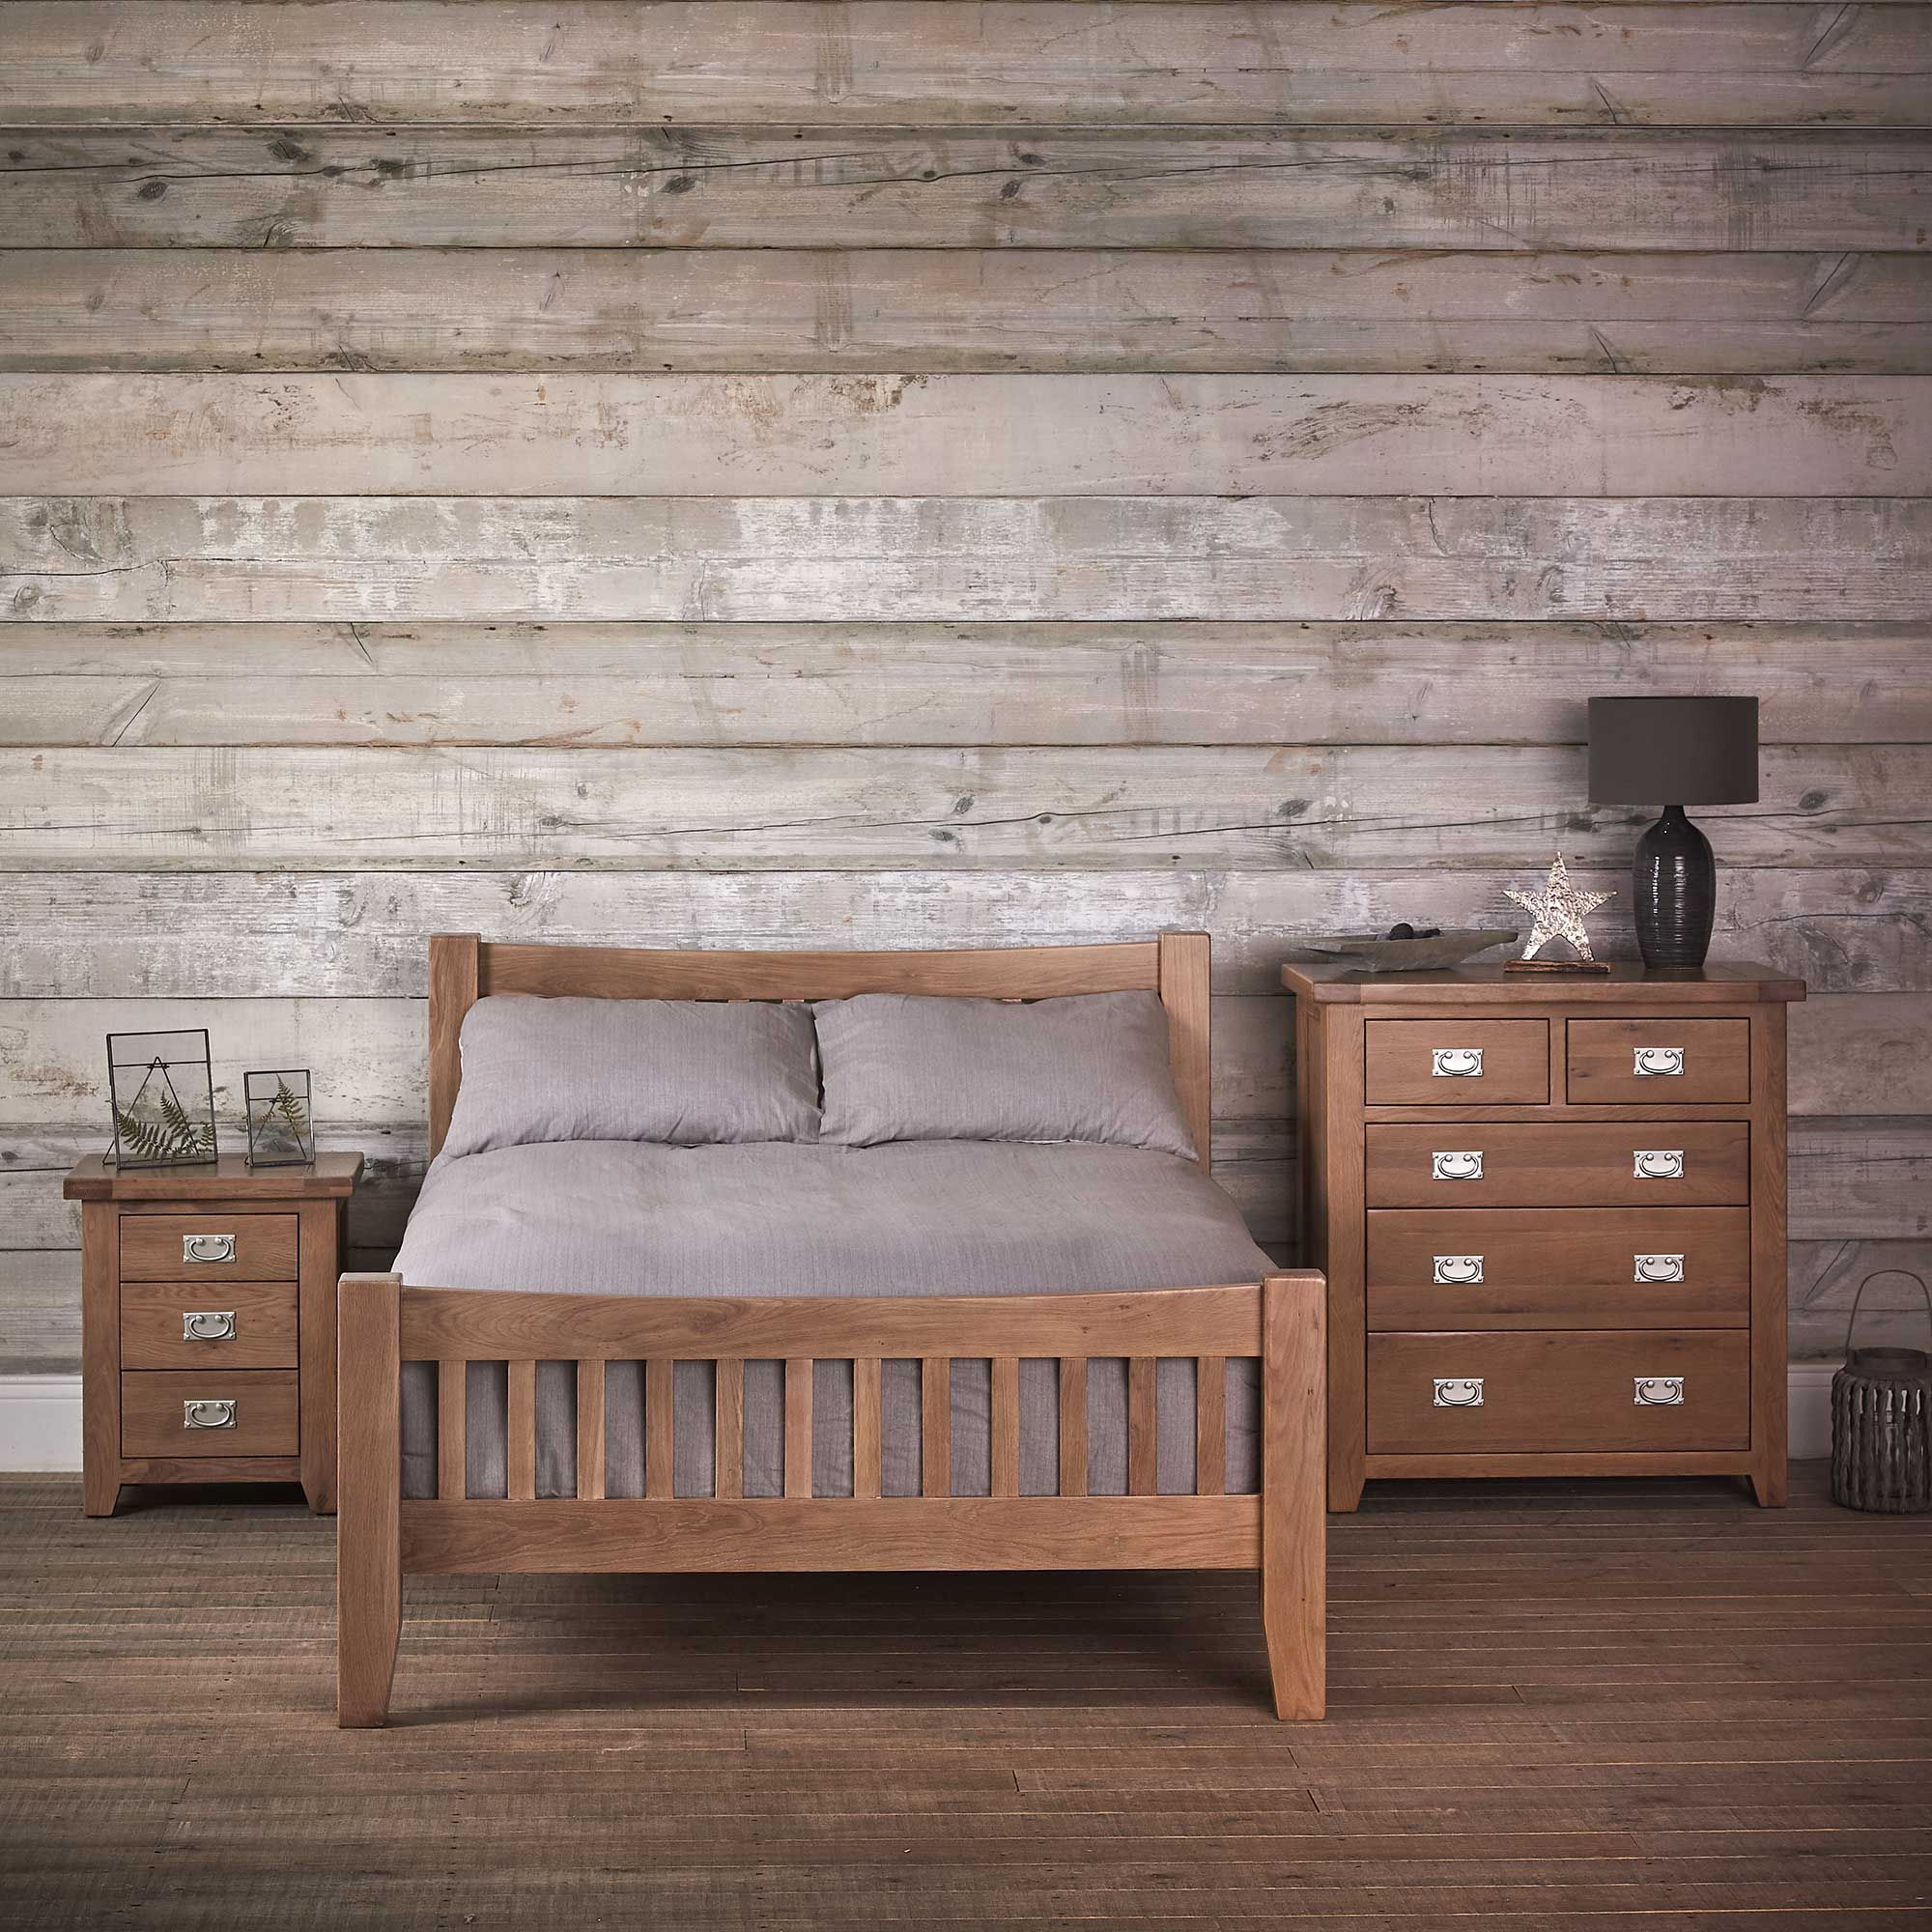 The Ripley bedroom collection is crafted from Oak and Pine, and features contrasting brushed steel handles, the perfect blend of traditional charm and practical functionality.